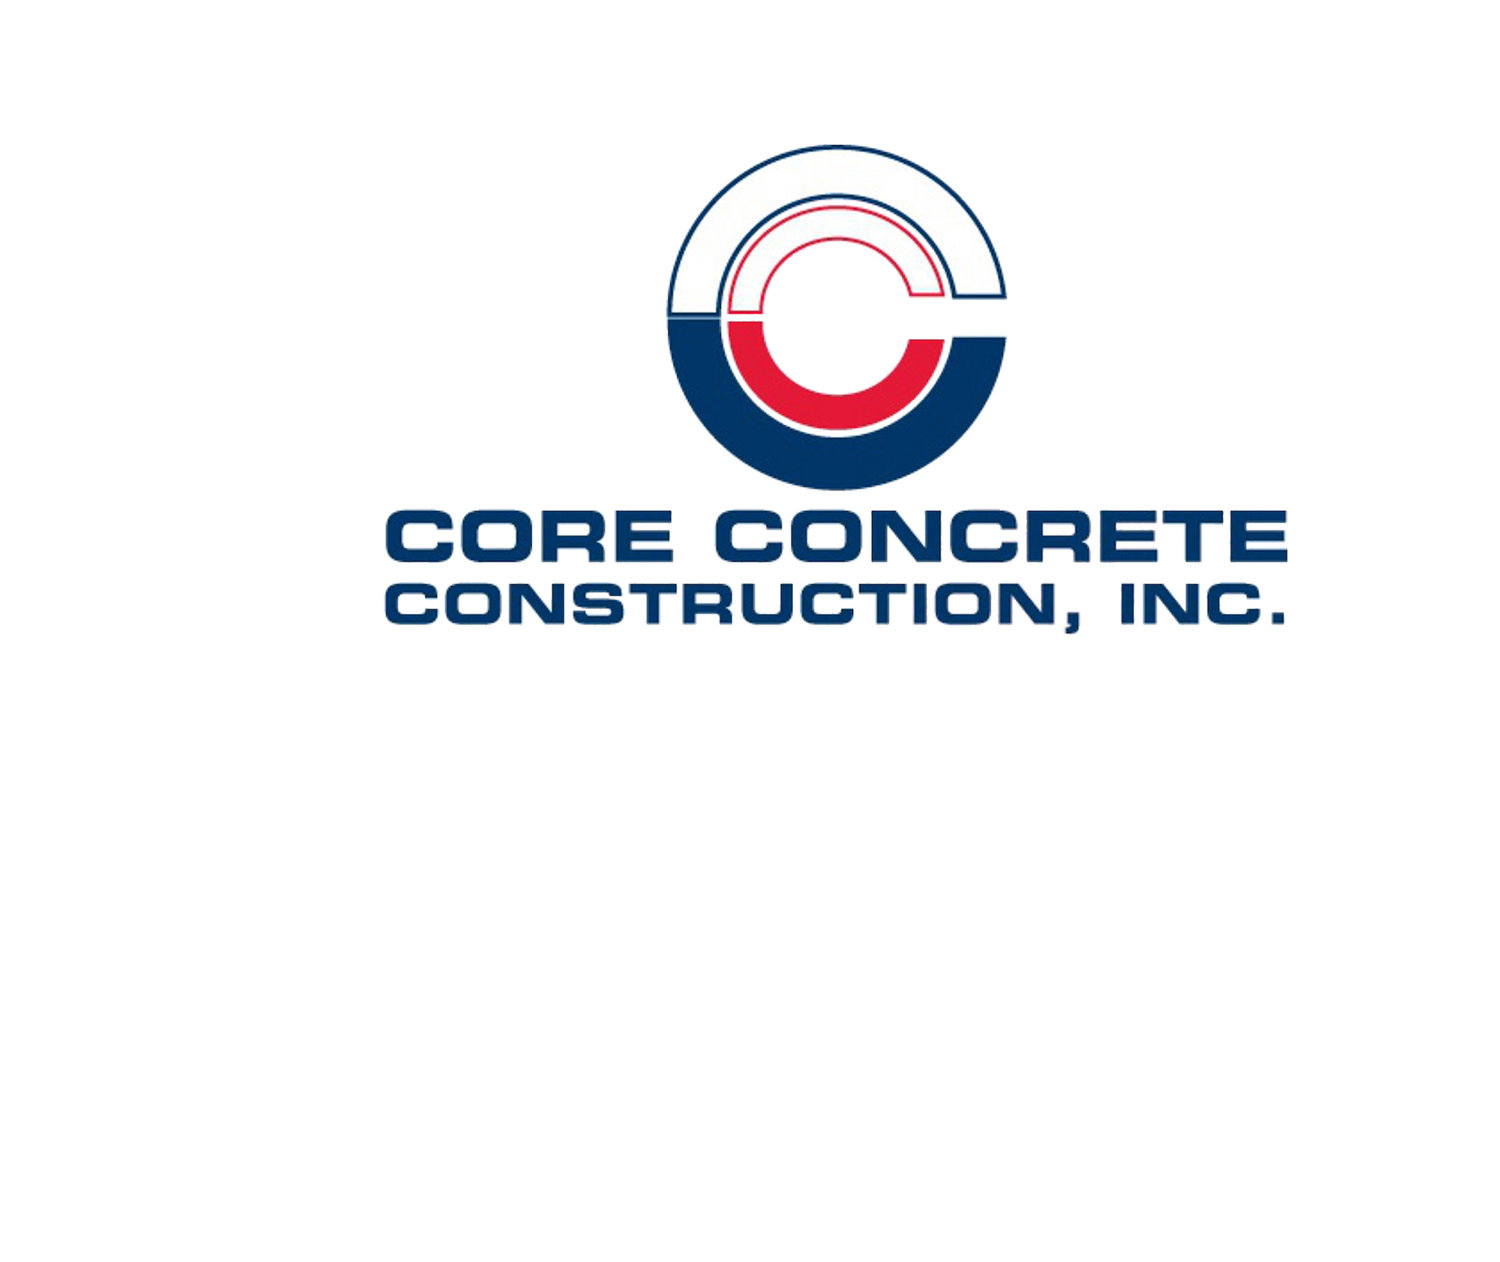 CORE CONCRETE CONSTRUCTION